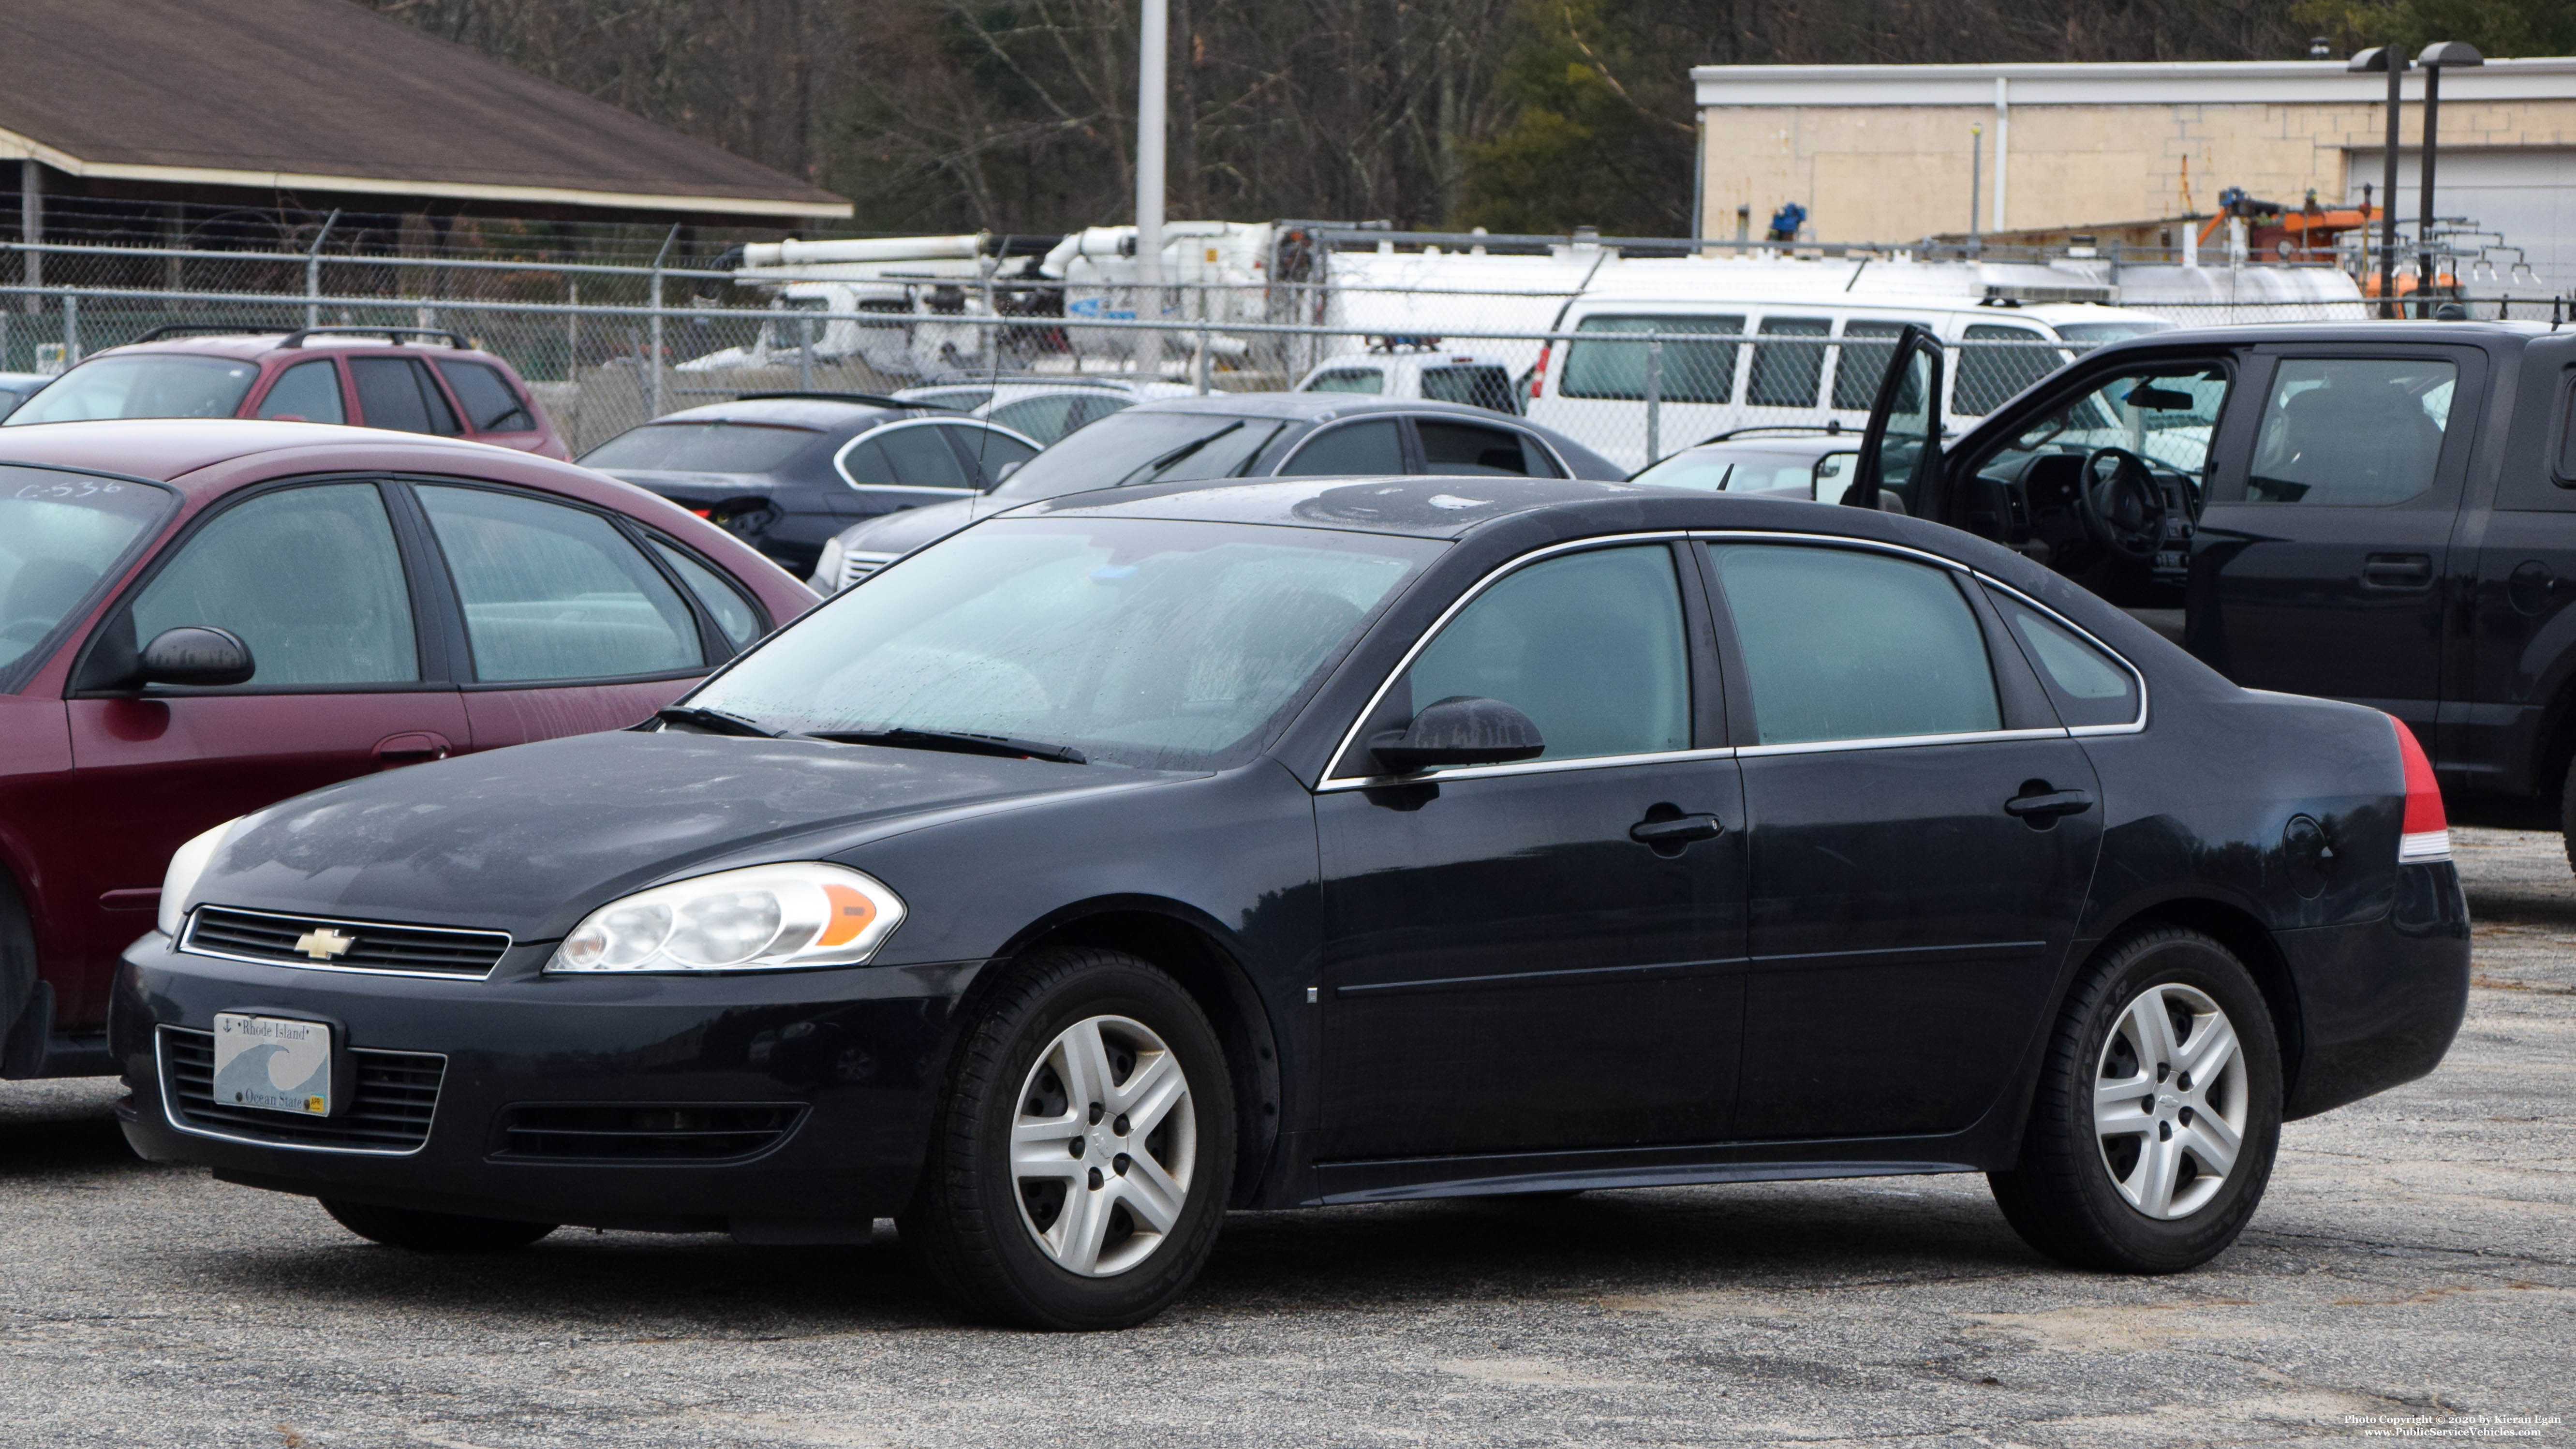 A photo  of Rhode Island State Police             Unmarked Unit, a 2005-2013 Chevrolet Impala             taken by Kieran Egan